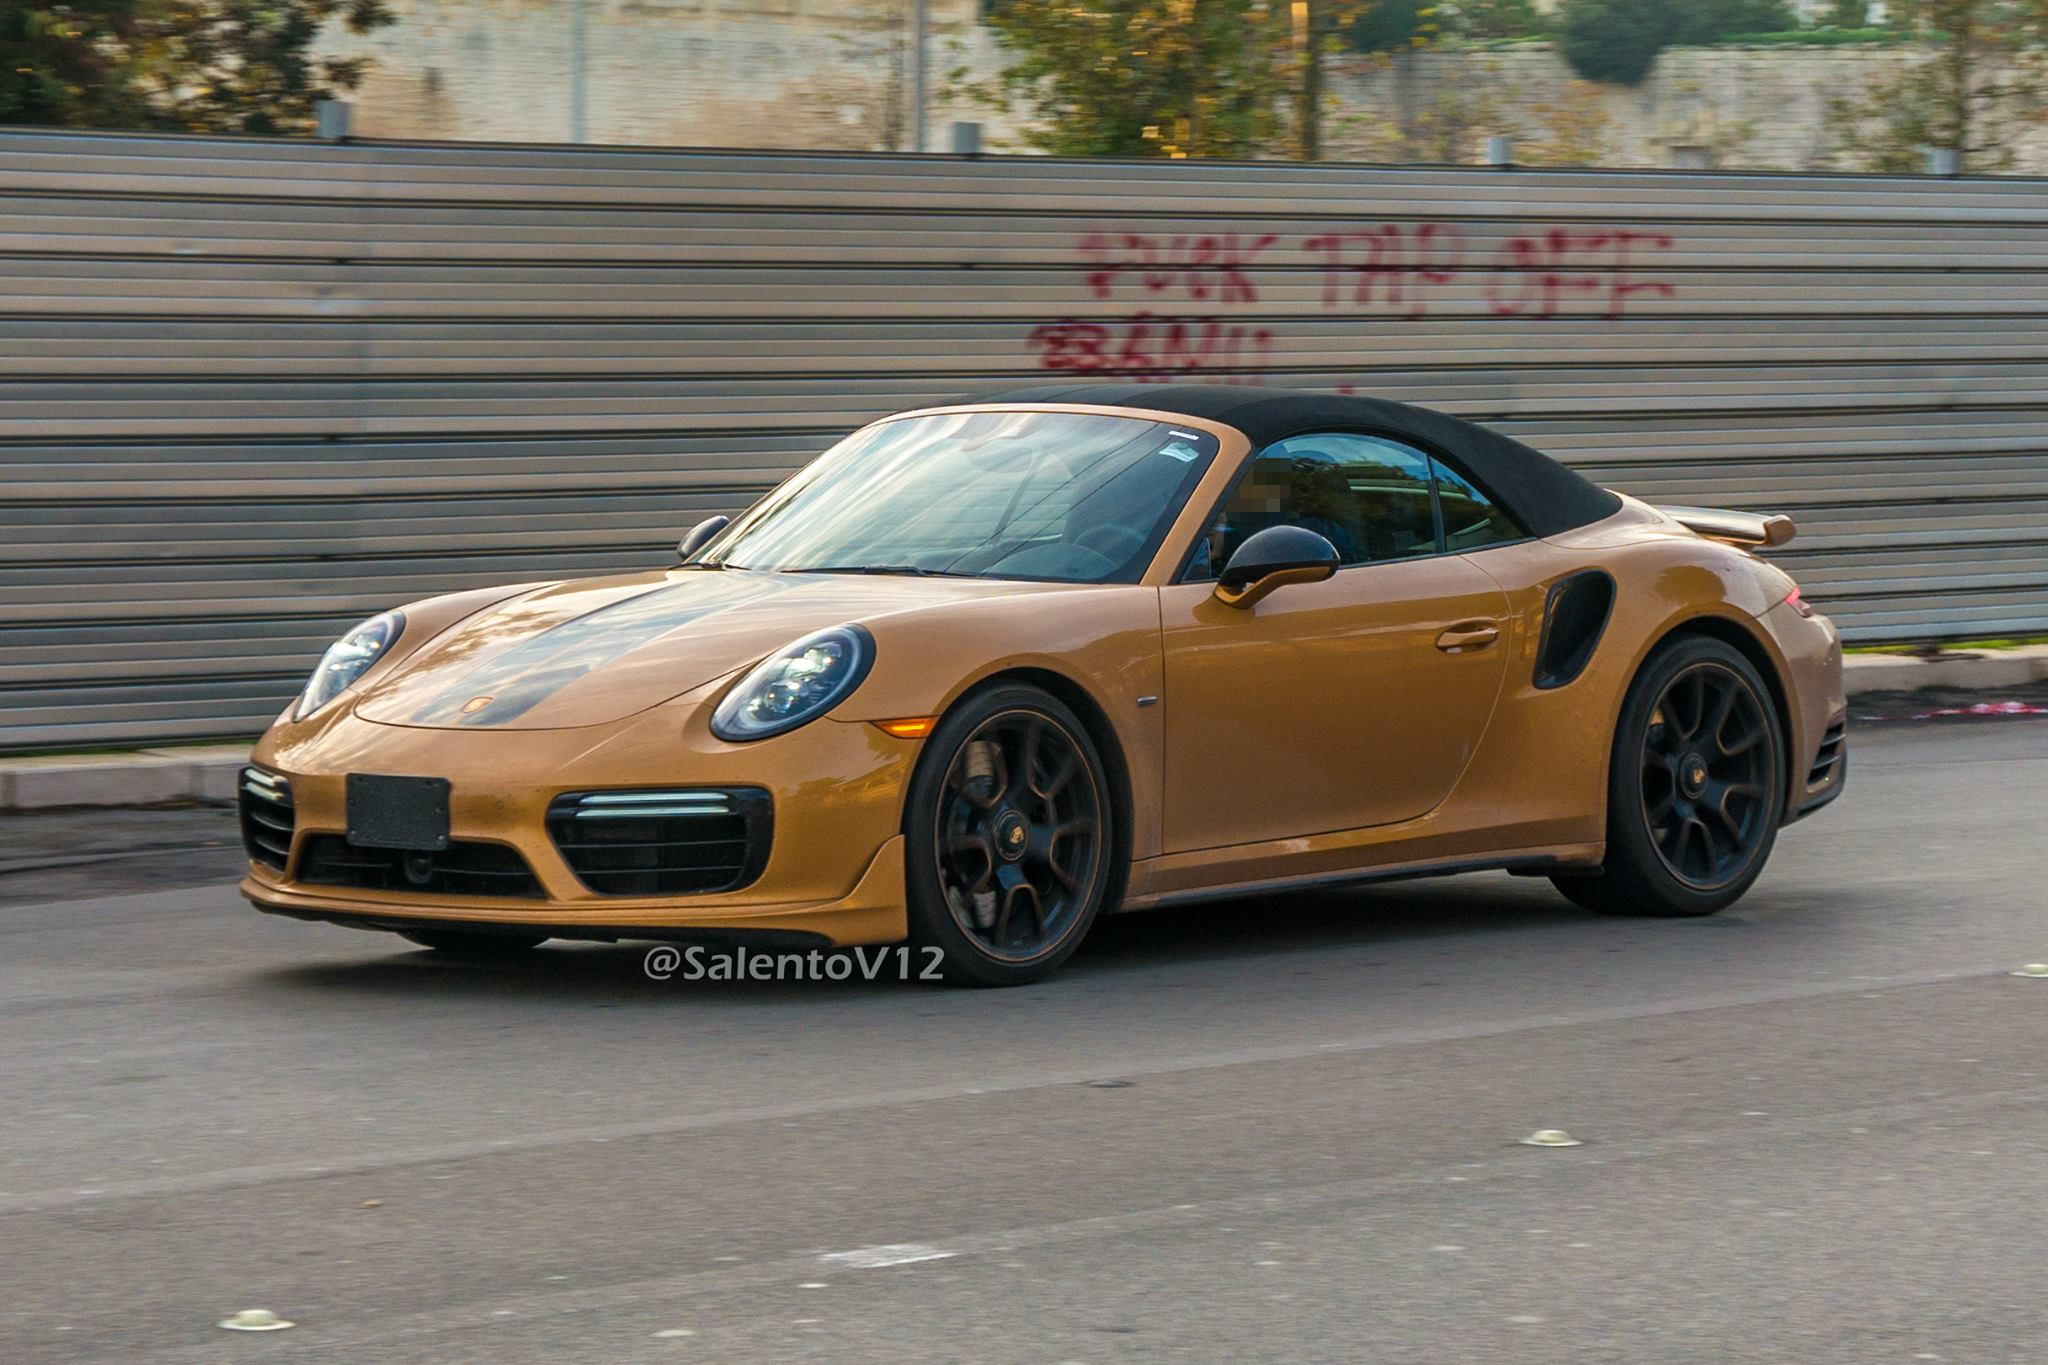 Porsche 911 Turbo S Exclusive Series Cabriolet (1)